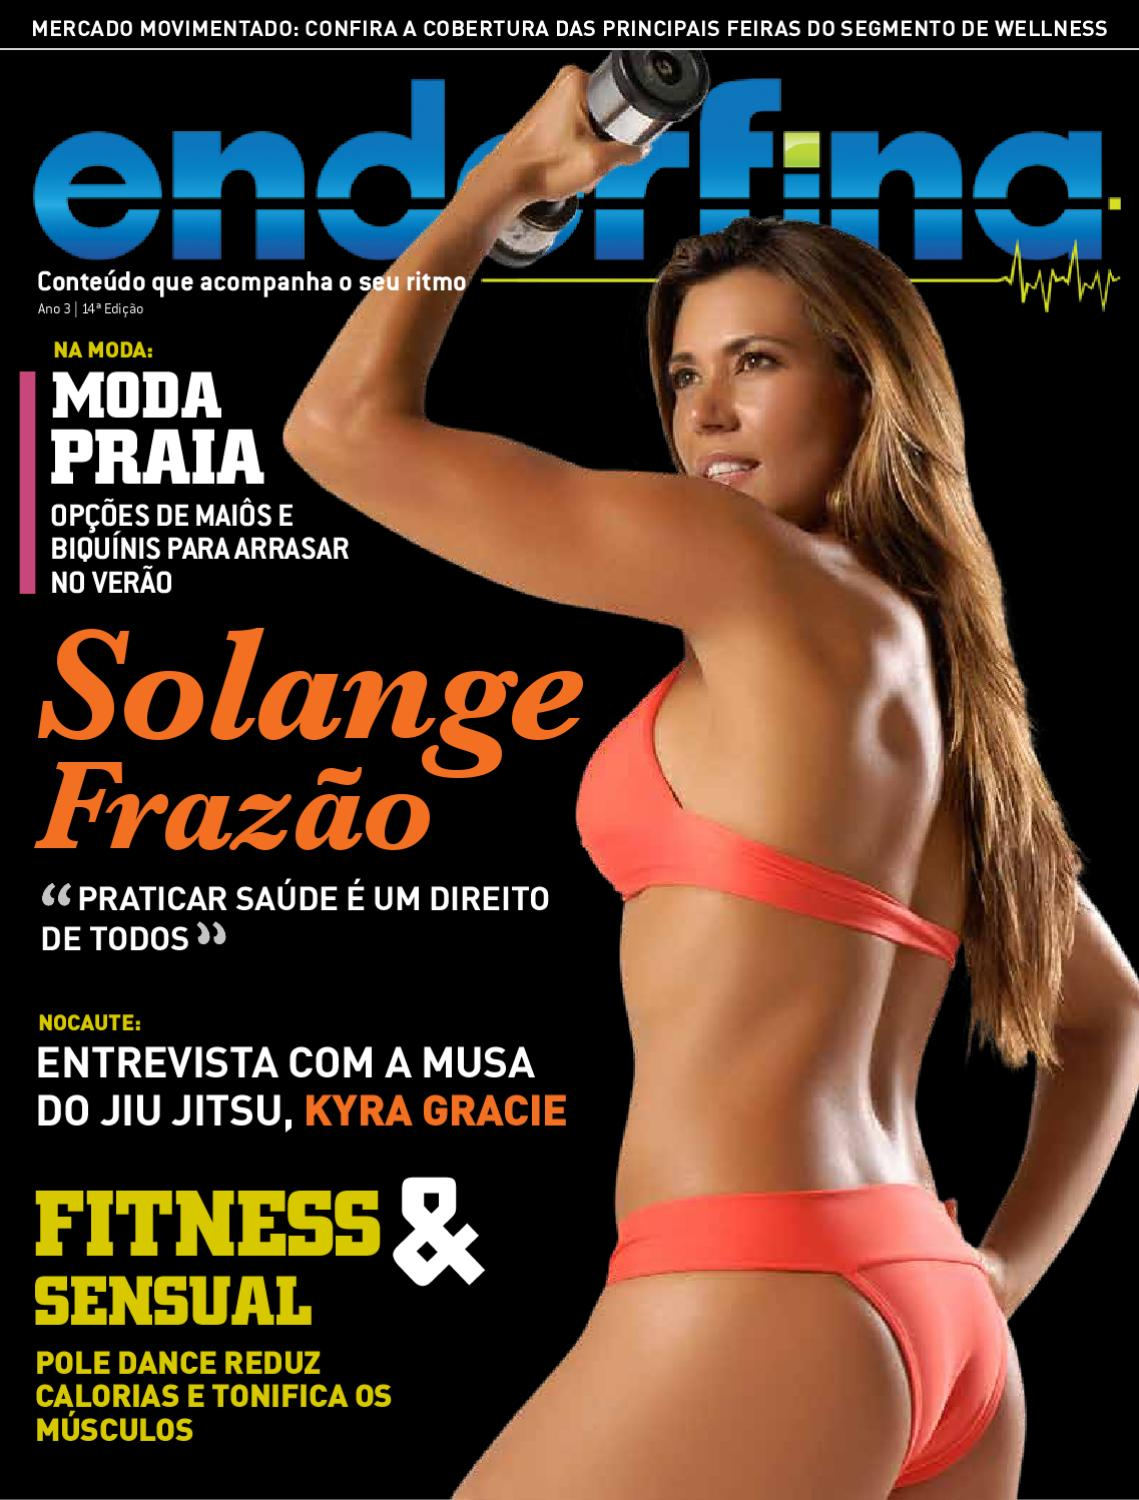 38d013bb3 Revista Endorfina - Edição 14 by Revista Endorfina - issuu